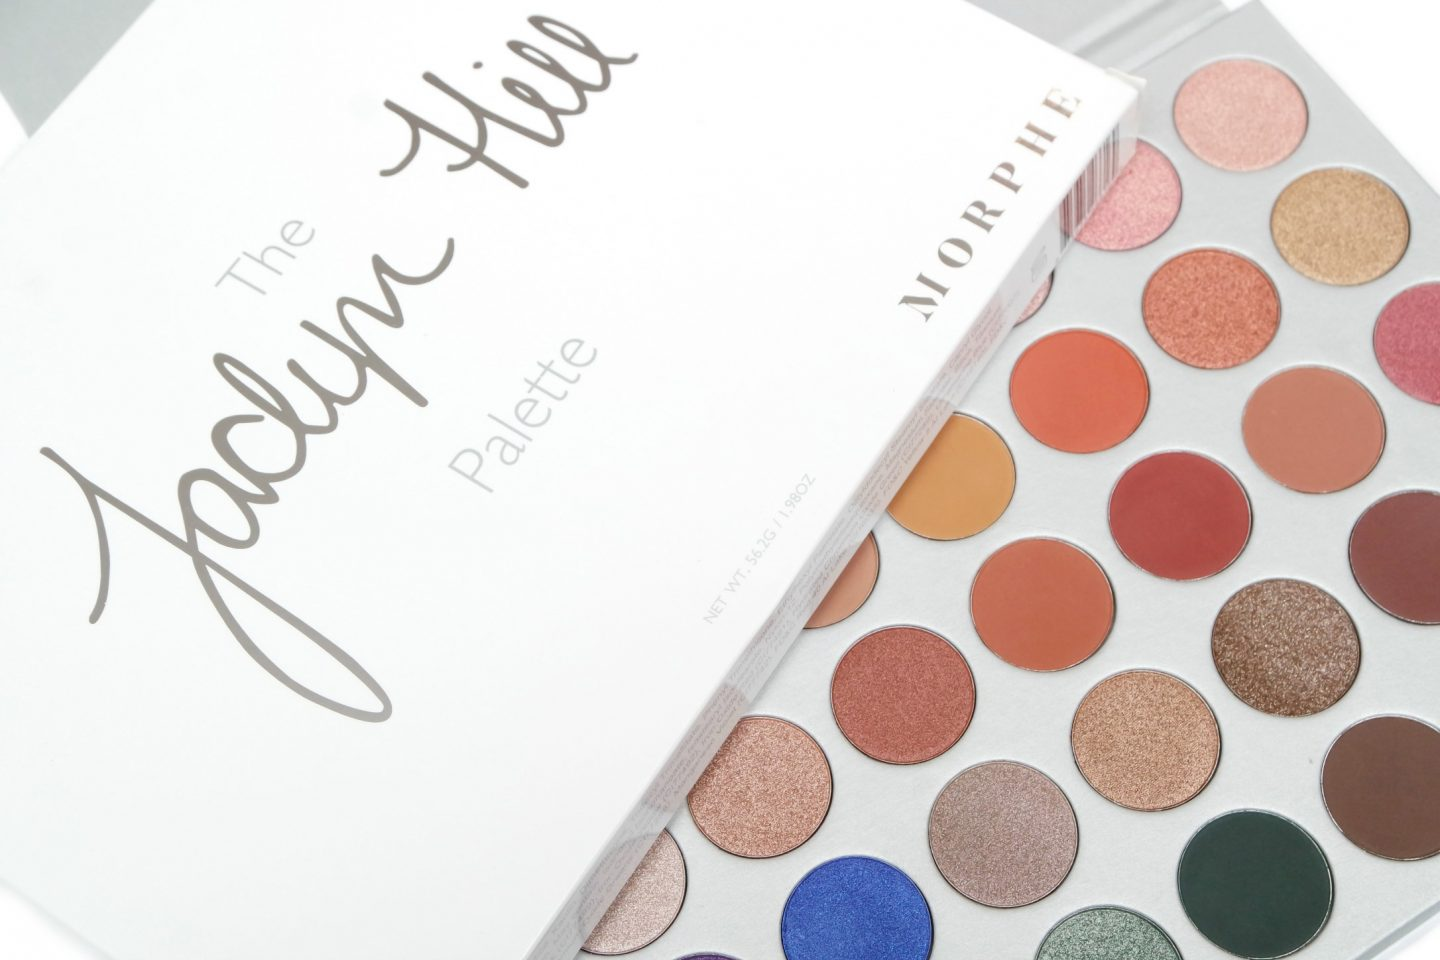 Morphe The Jaclyn Hill Palette Review